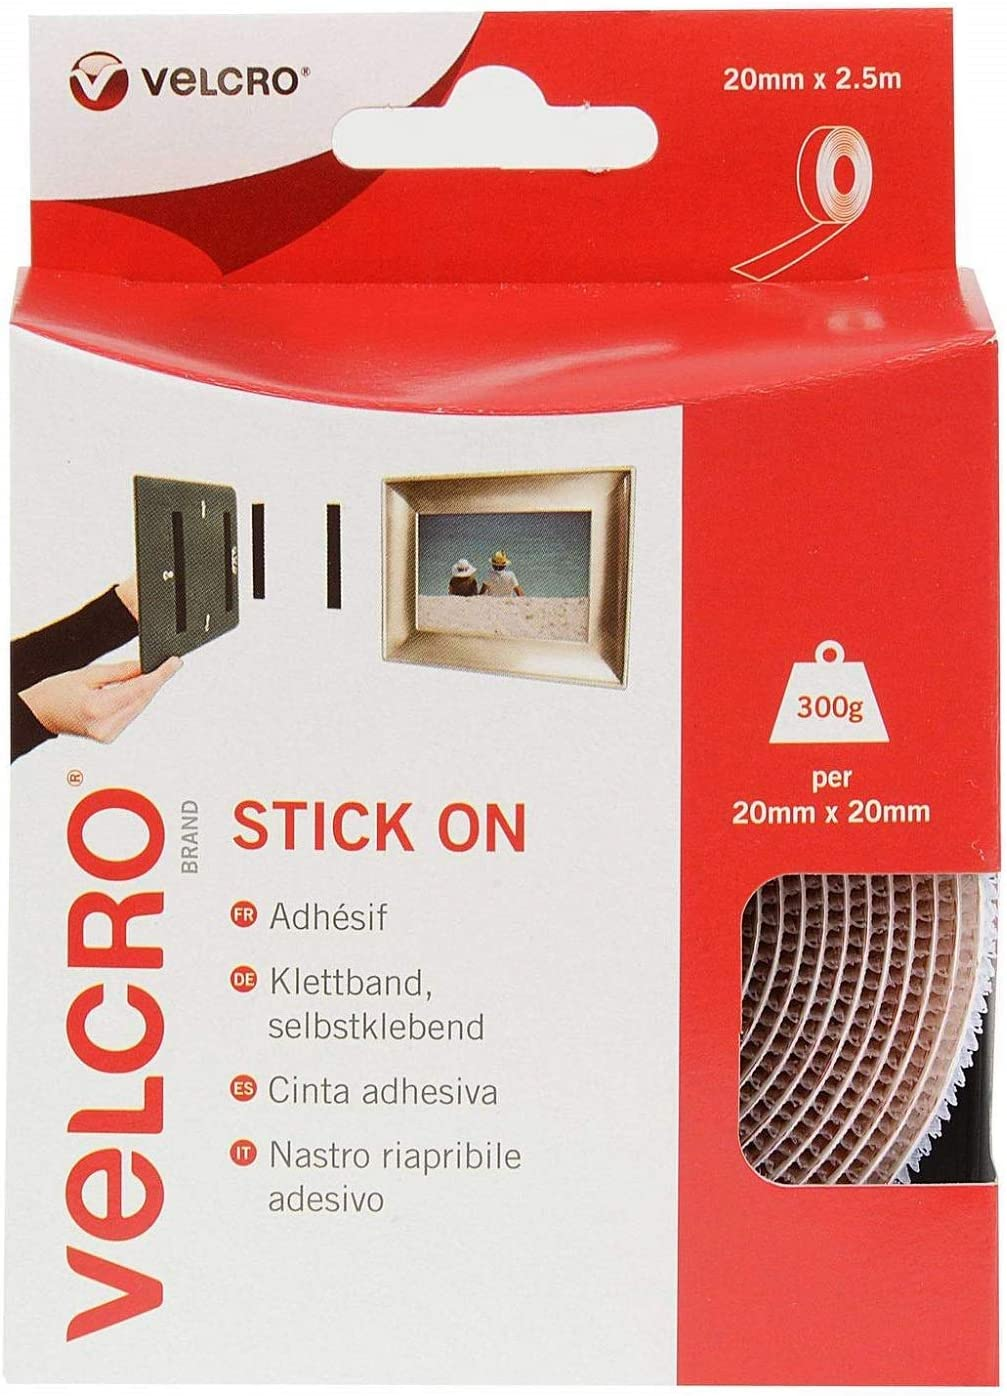 20mm x 2.5m White VELCRO Brand Stick On Super Strong Adhesive Tape